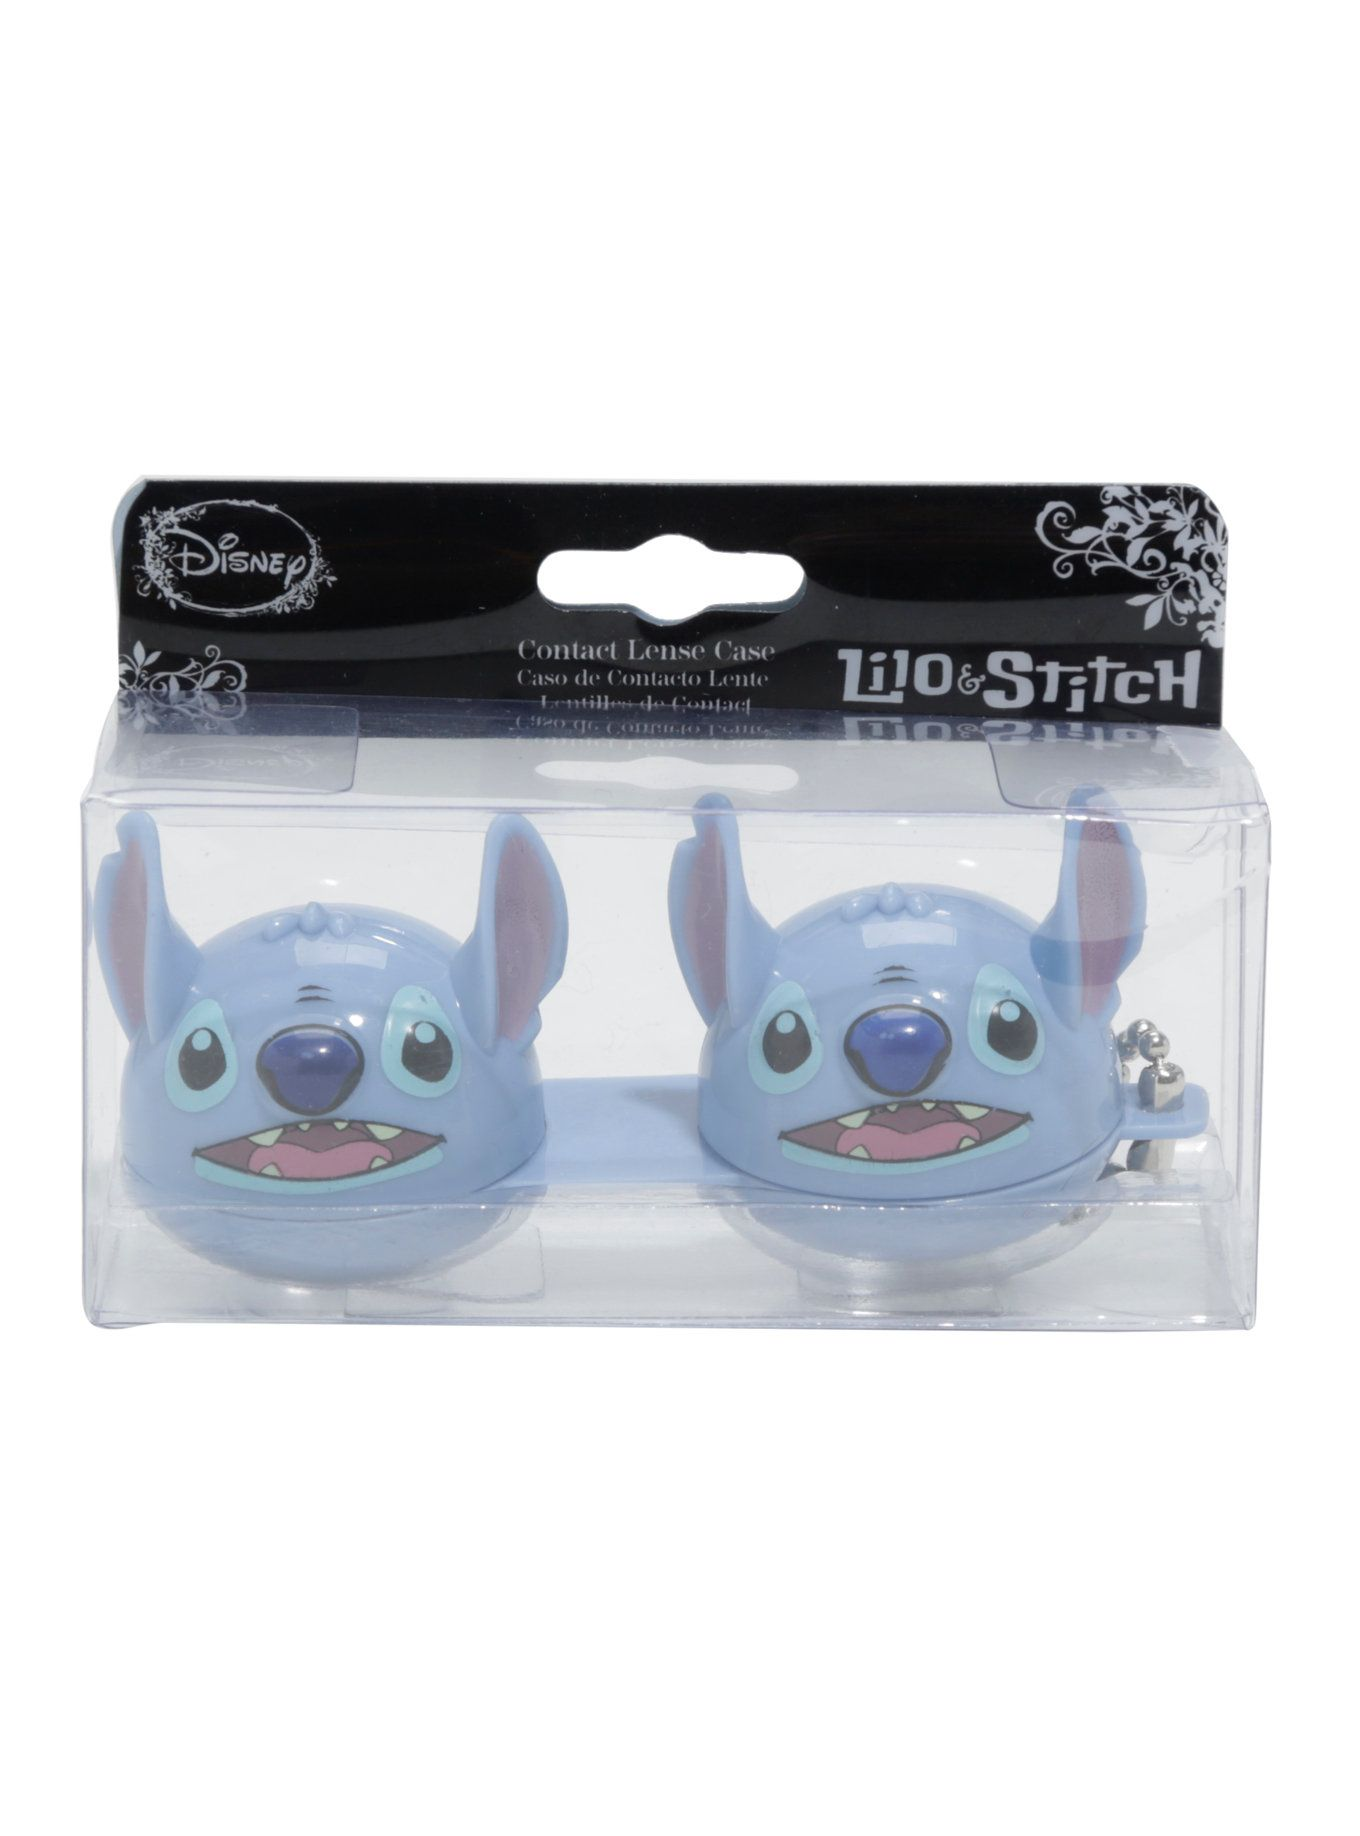 Disney Lilo Stitch Stitch Contact Lens Case Contact Lenses Case Contact Lenses Contact Lens Cases